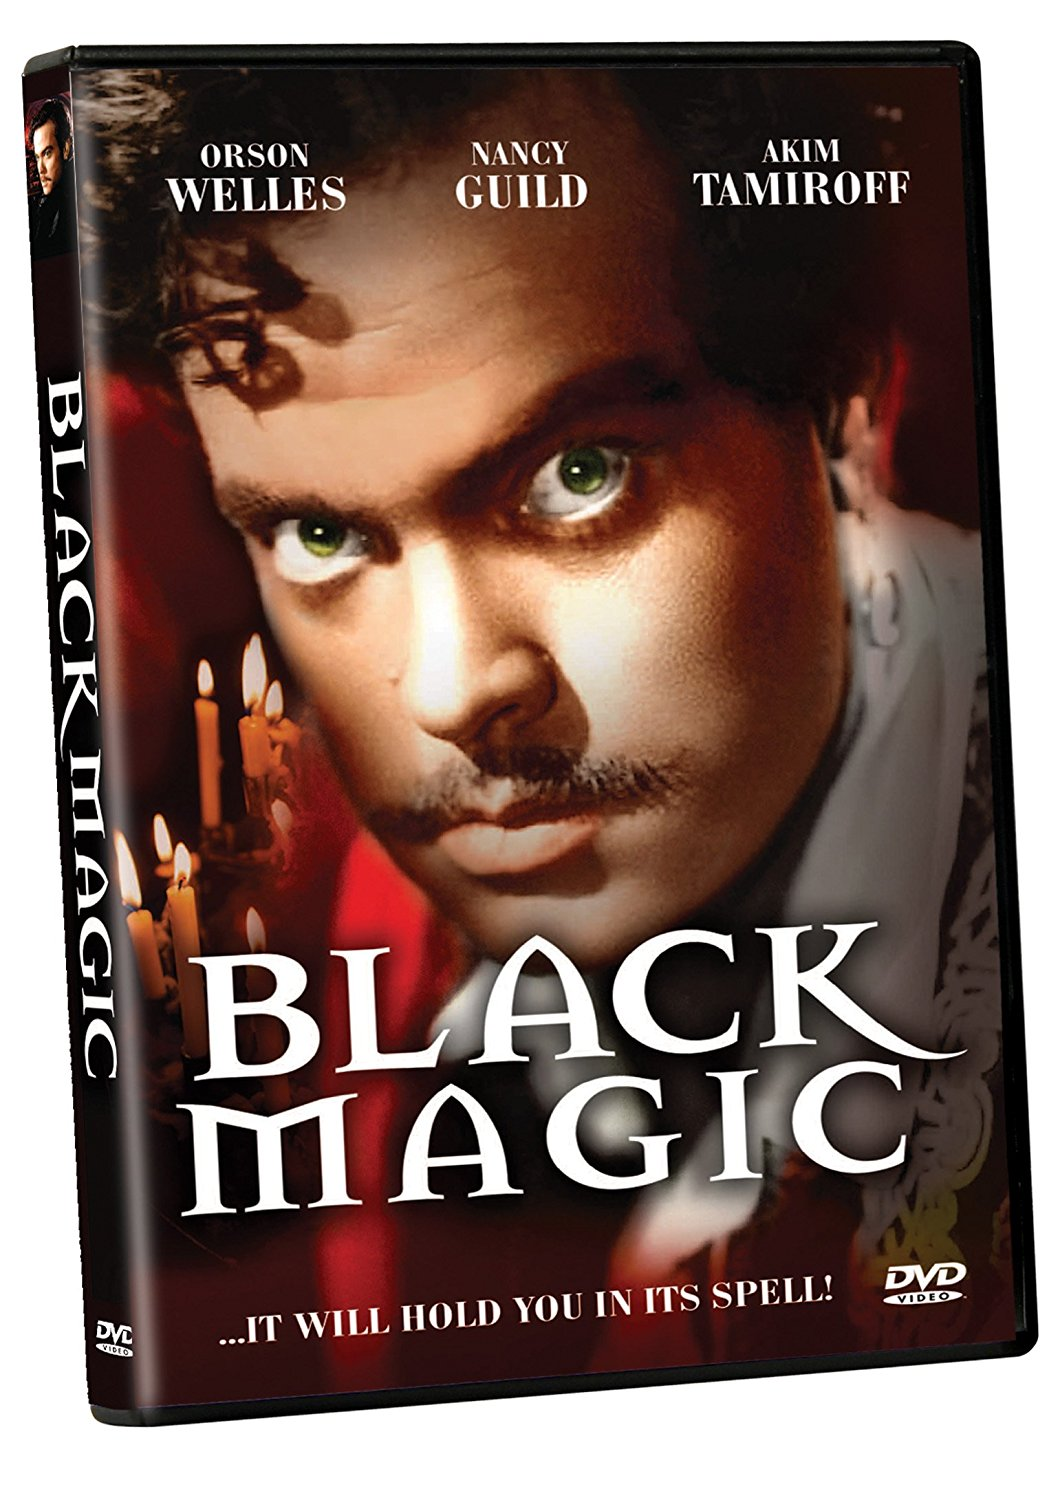 Black Magic, starring Orson Welles, Nancy Guild, Akim Tamiroff